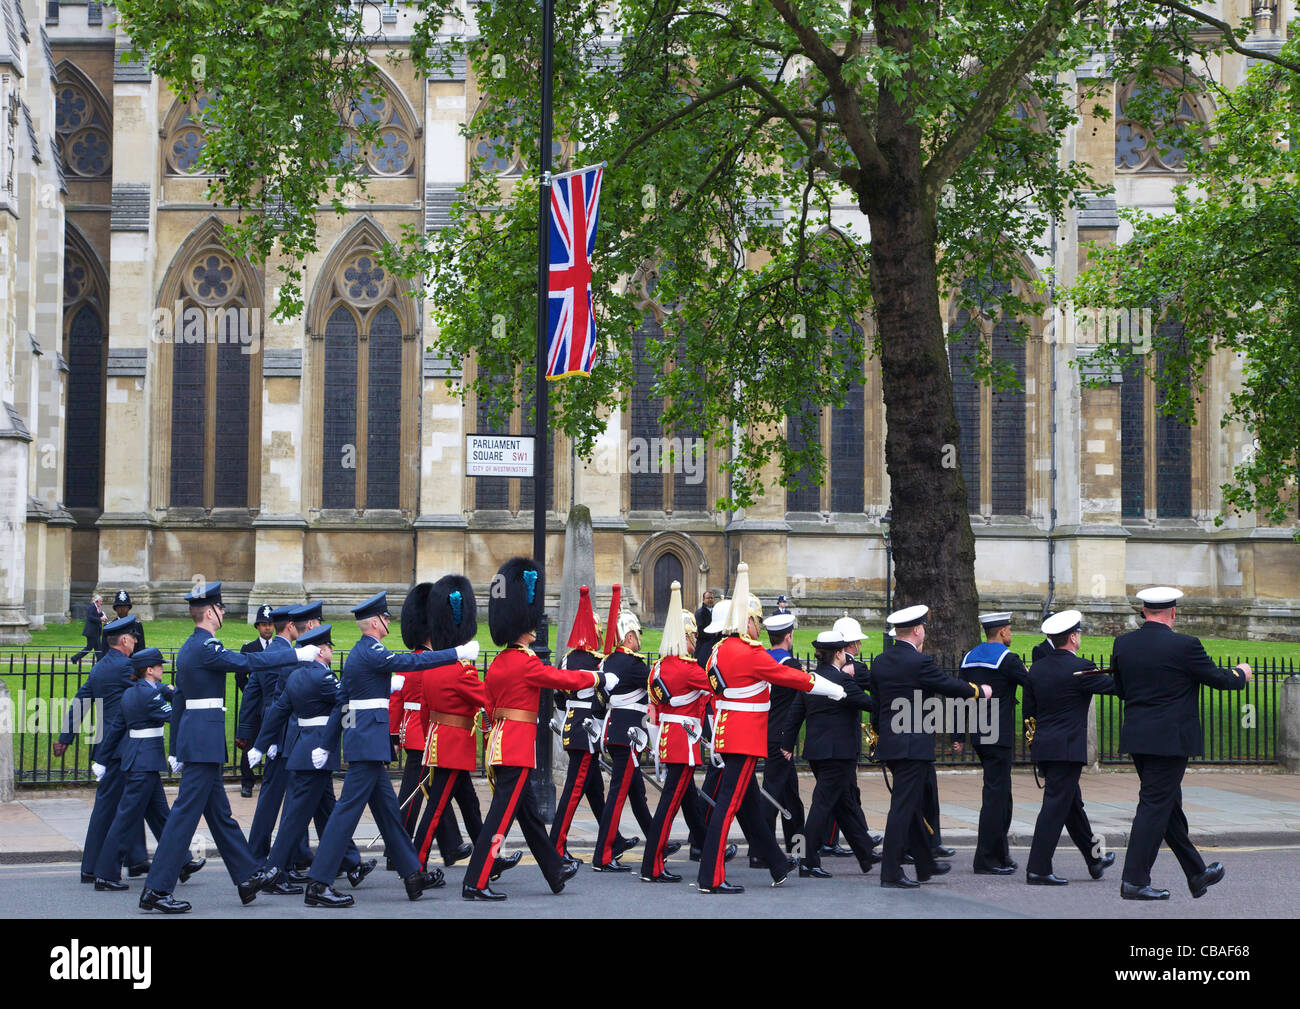 Members of Her Majesty's armed forces marching outside Westminster Abbey, Marriage of Prince William to Kate - Stock Image